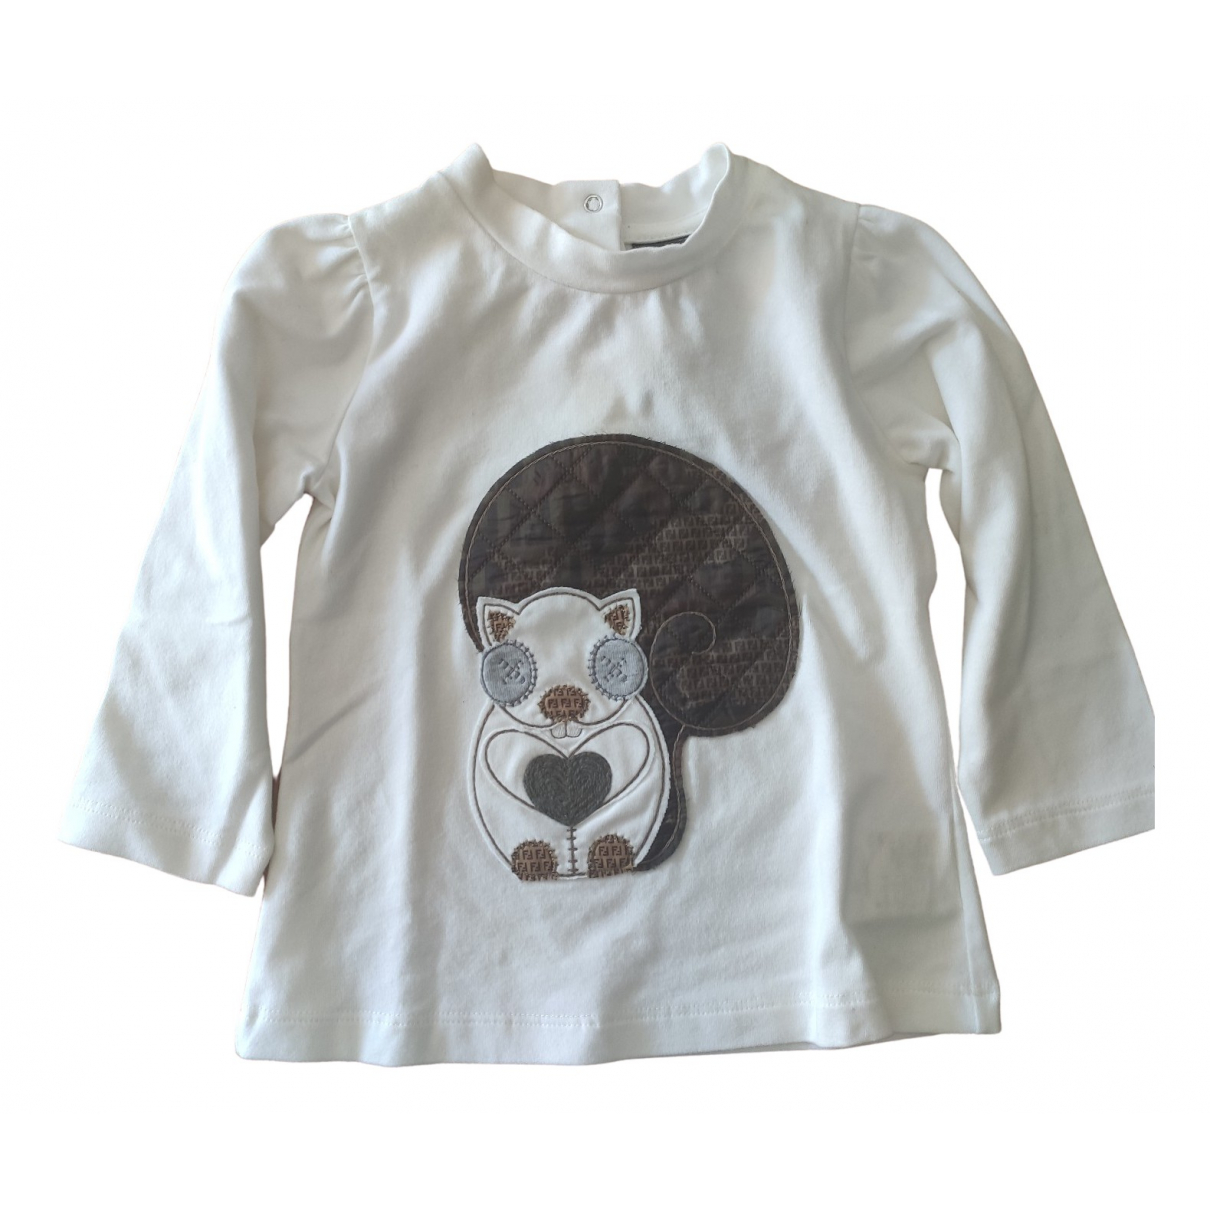 Fendi \N White Cotton  top for Kids 9 months - up to 71cm FR